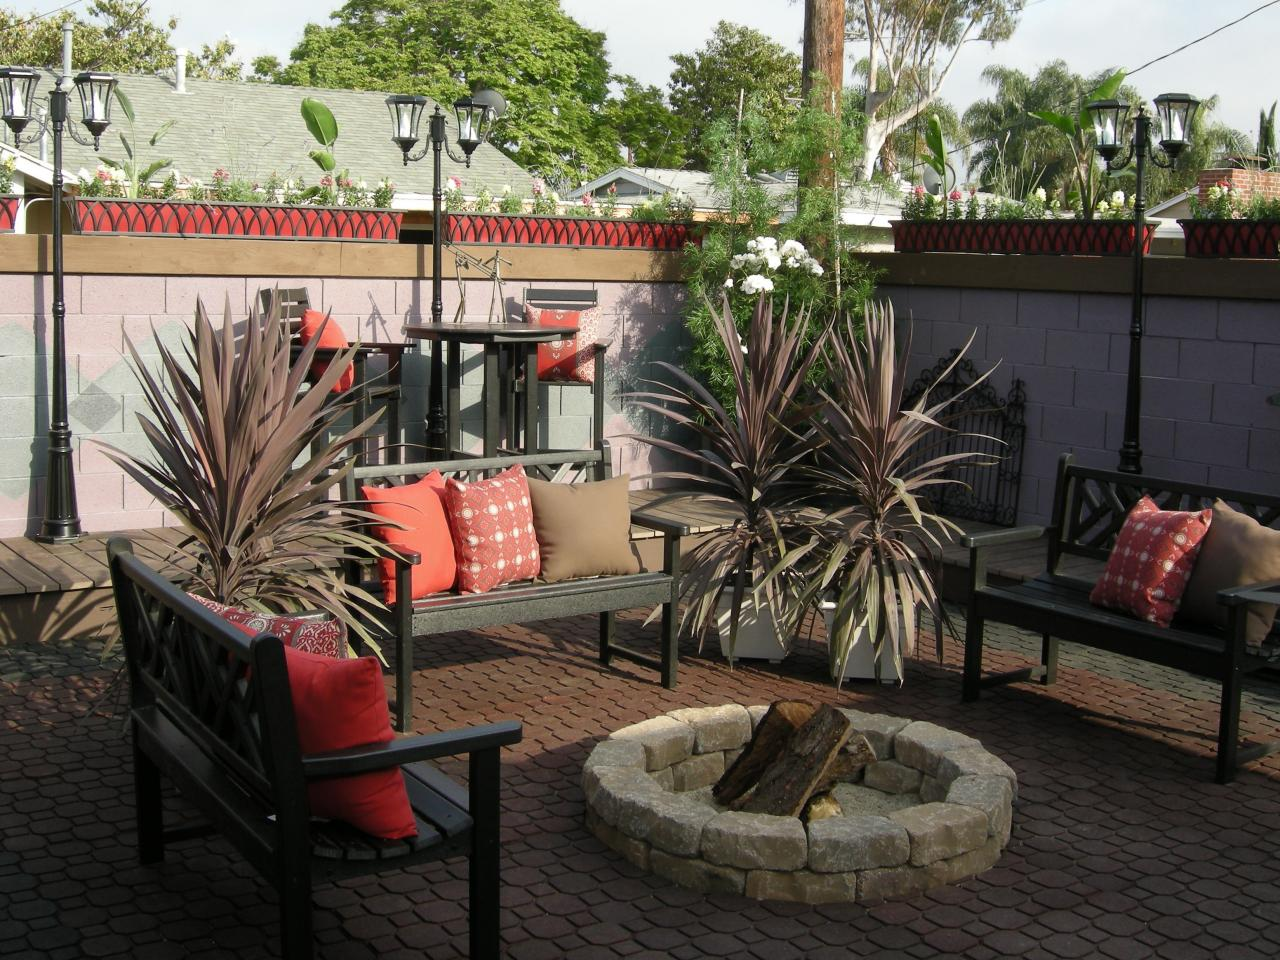 Fire Pit Options for Patios | HGTV